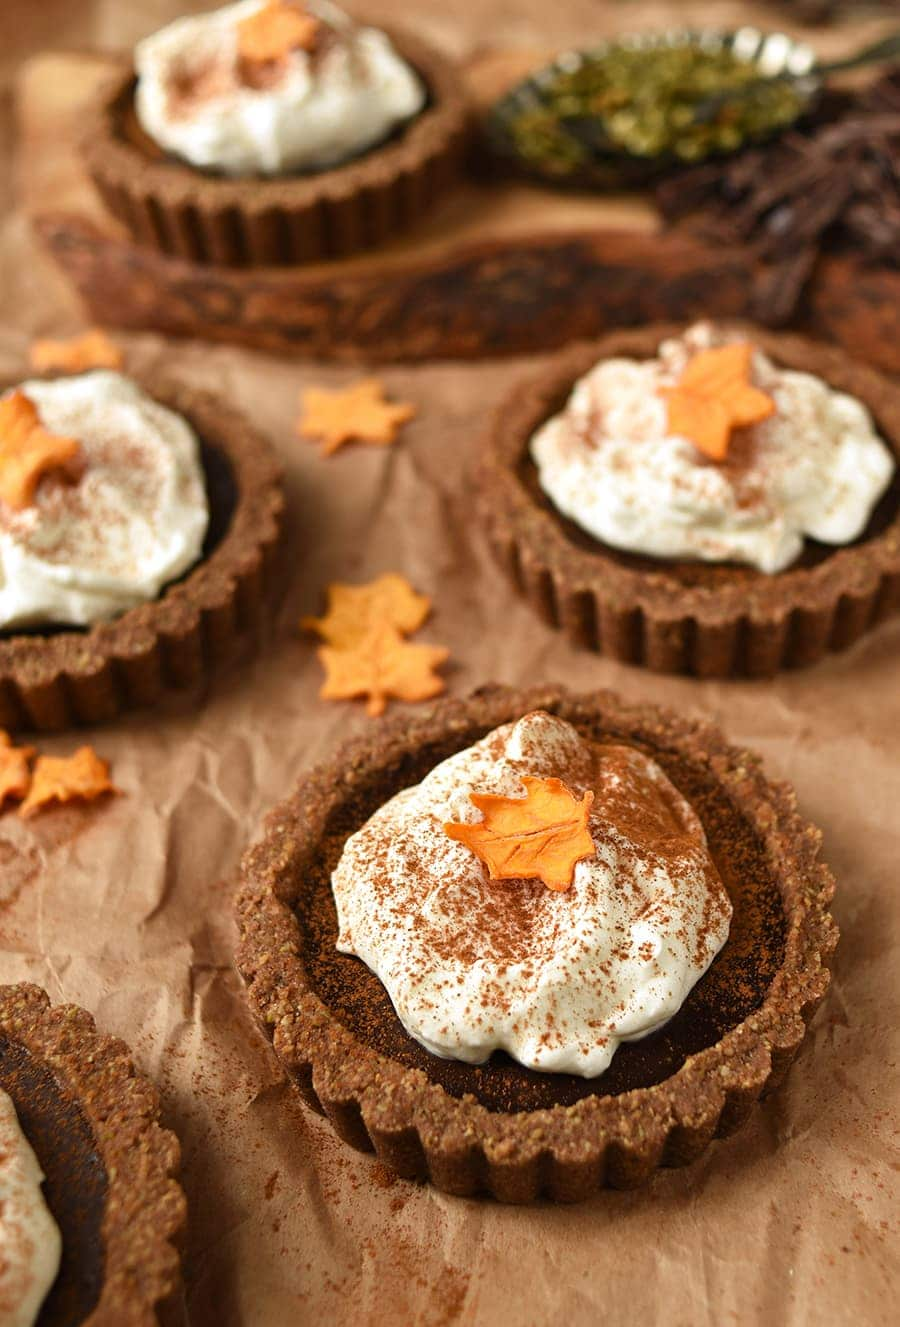 Pumpkin Chocolate Tarts with Pepita Crust are a delicious option for gluten-free, nut-free dinner guests this holiday season!